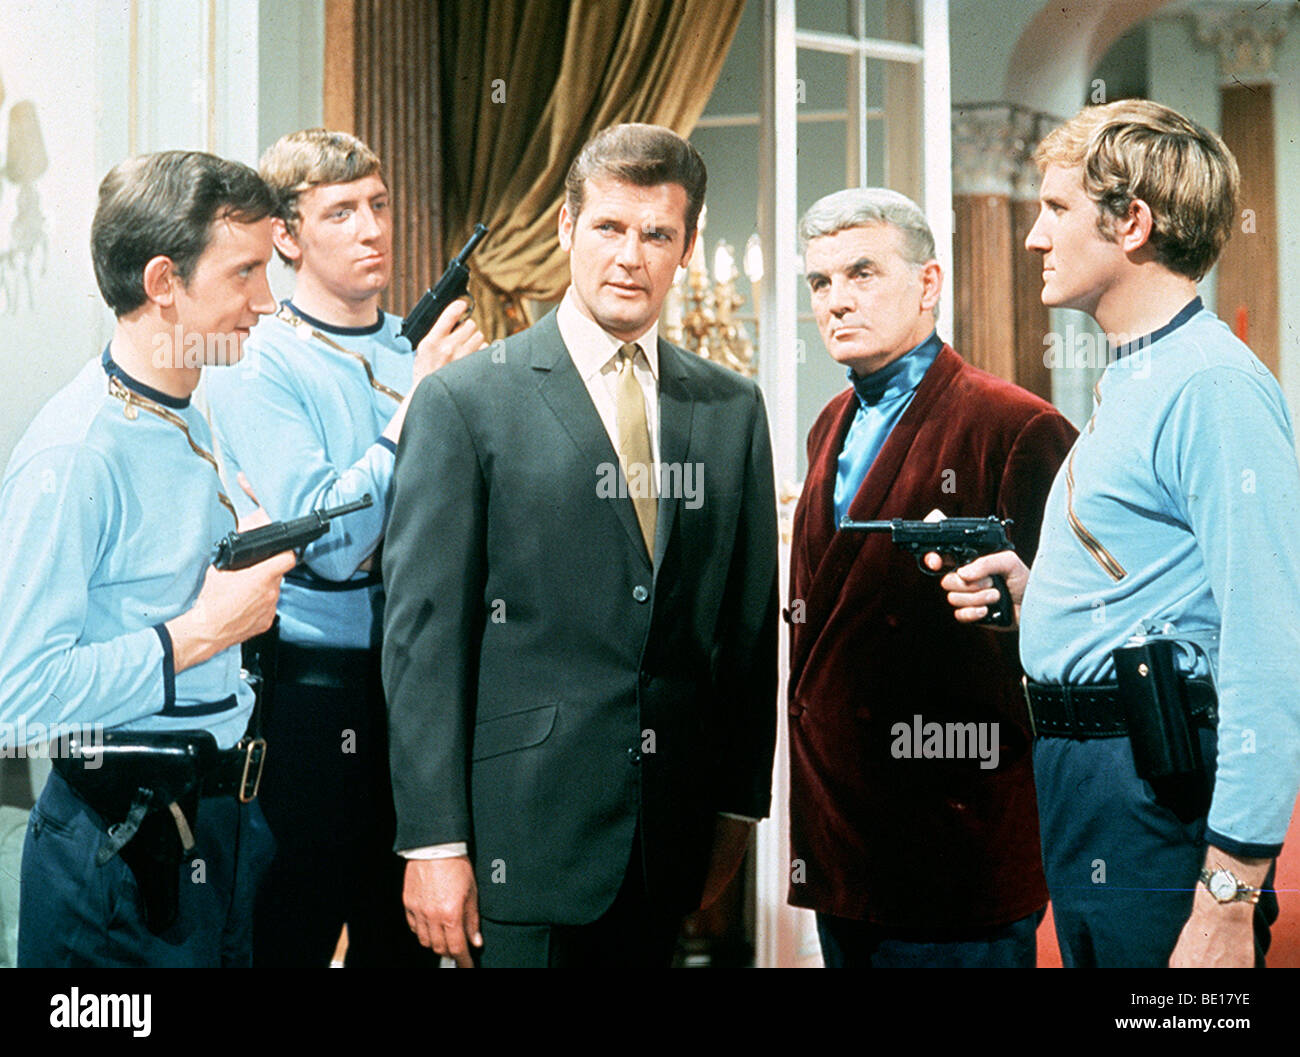 The Saint Uk Tv Series 1960 69 With Roger Moore As